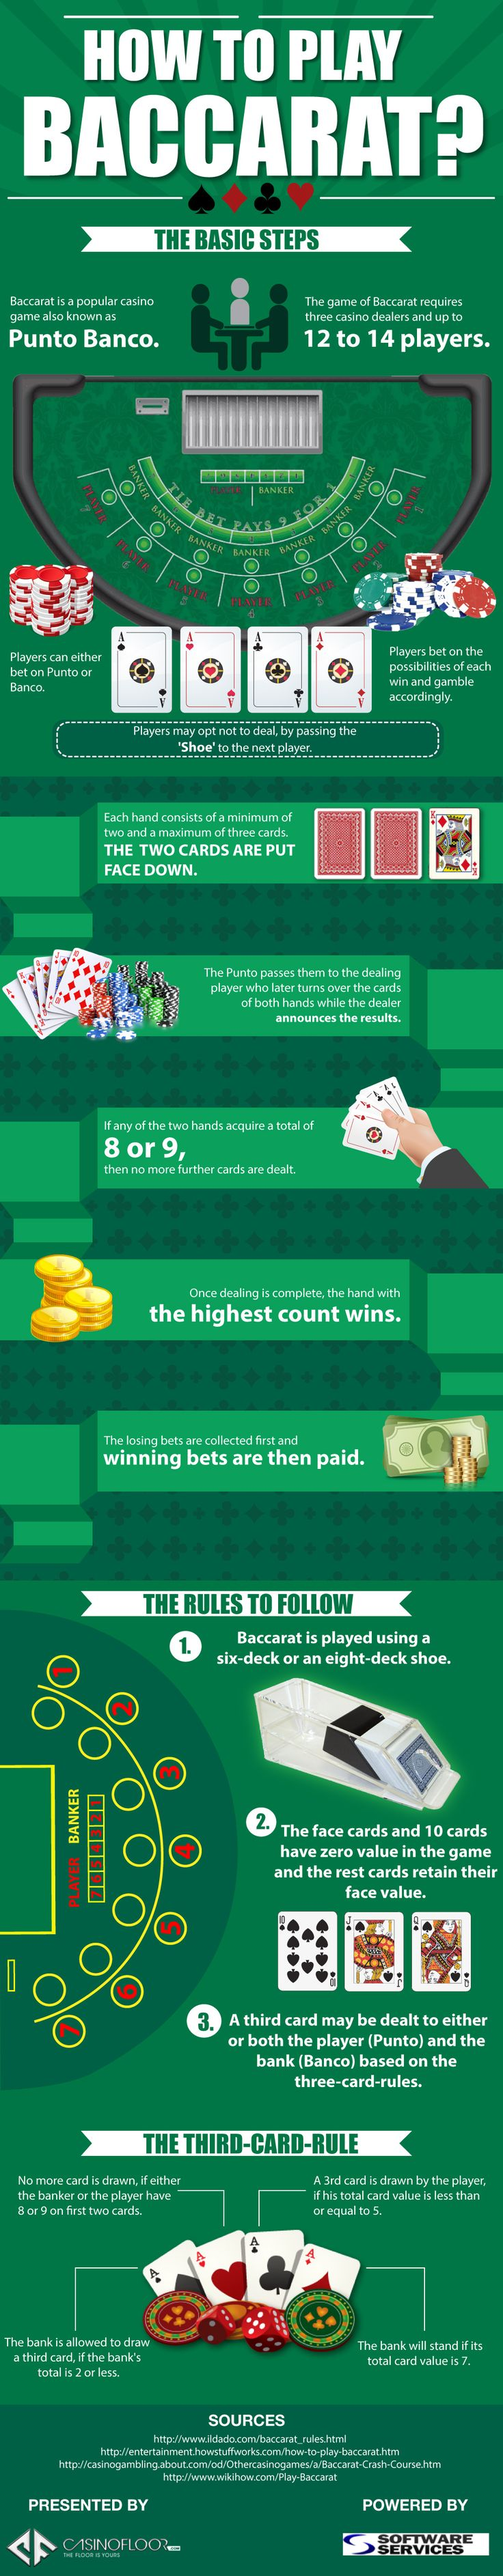 """This Infographic titled """"How to Play Baccarat ,"""" has been created by CasinoFloor.com with a big idea, giving a detailed information about the way in which the game is played. This Infographic will be useful in understanding a great deal about this interesting card game and its playing procedure."""